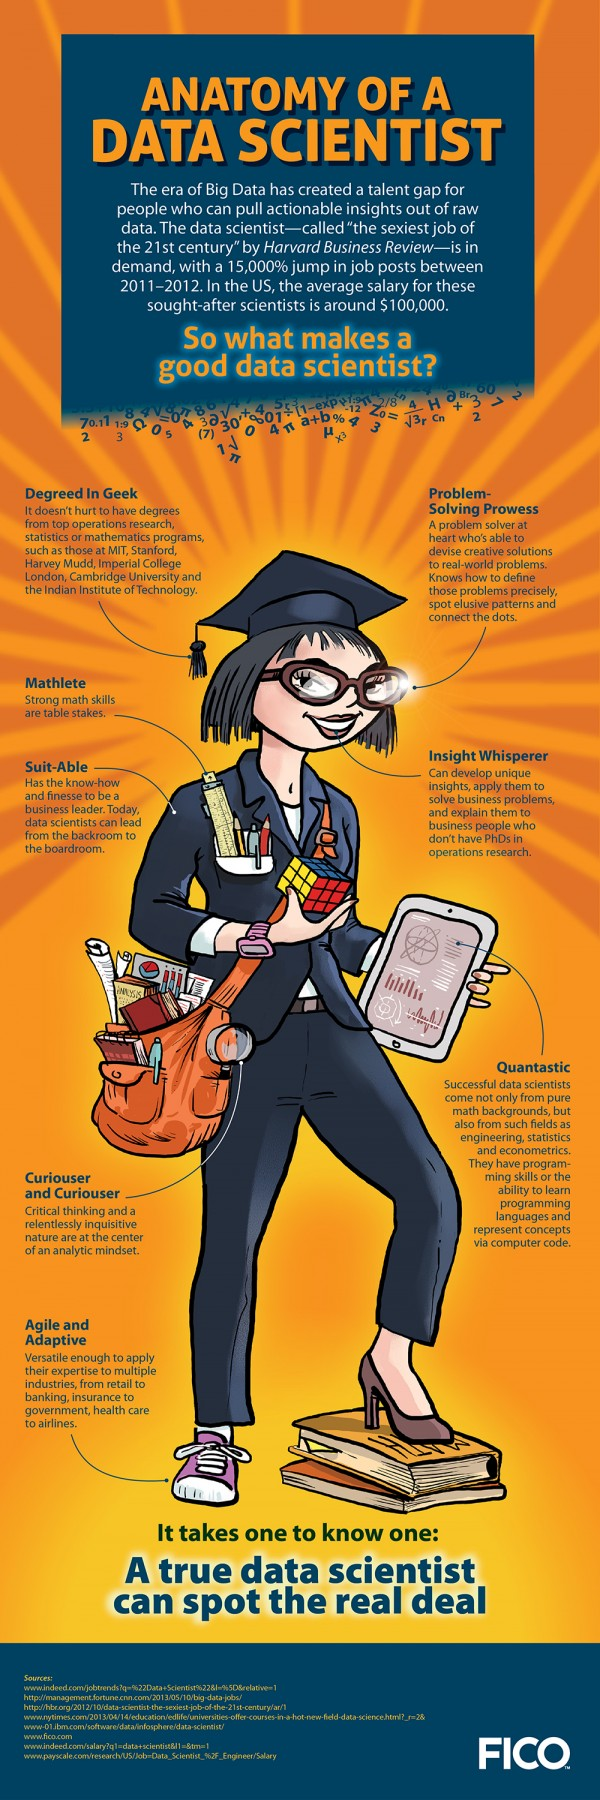 noid-Anatomy_of_a_Data_Scientist_infographic_HR